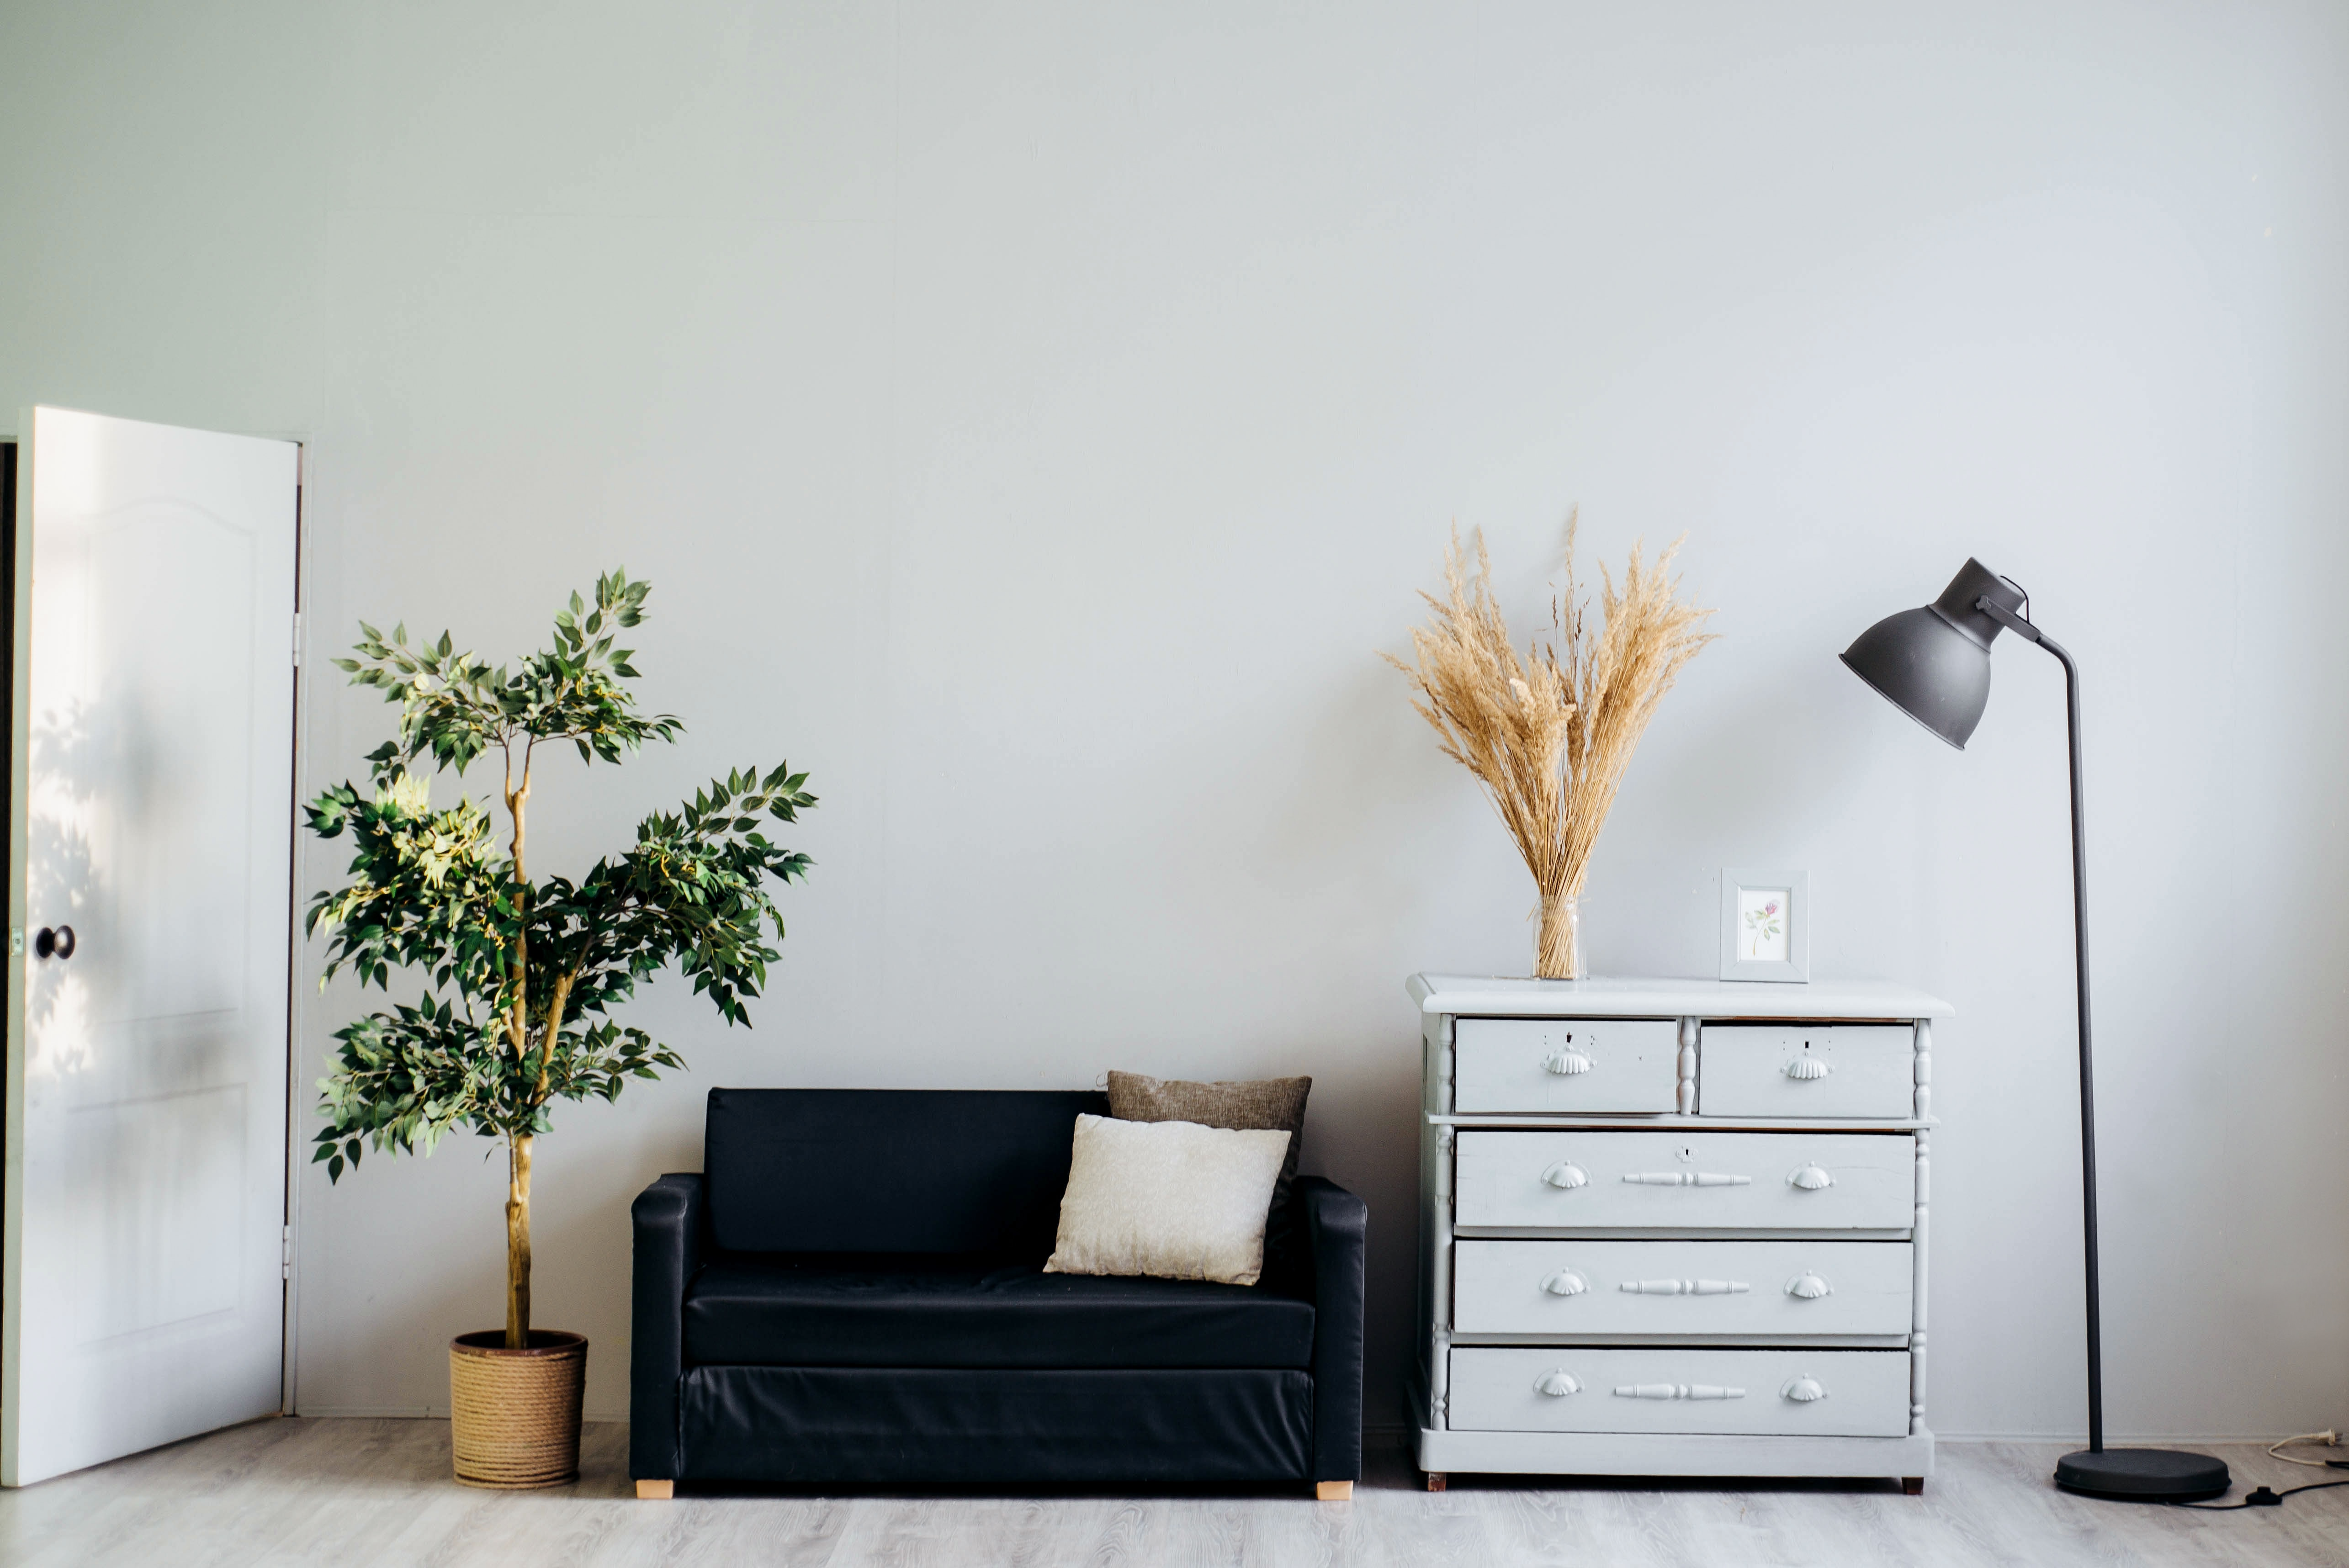 Overcoming The False Economy of Fast Furniture with Conscious Consumerism